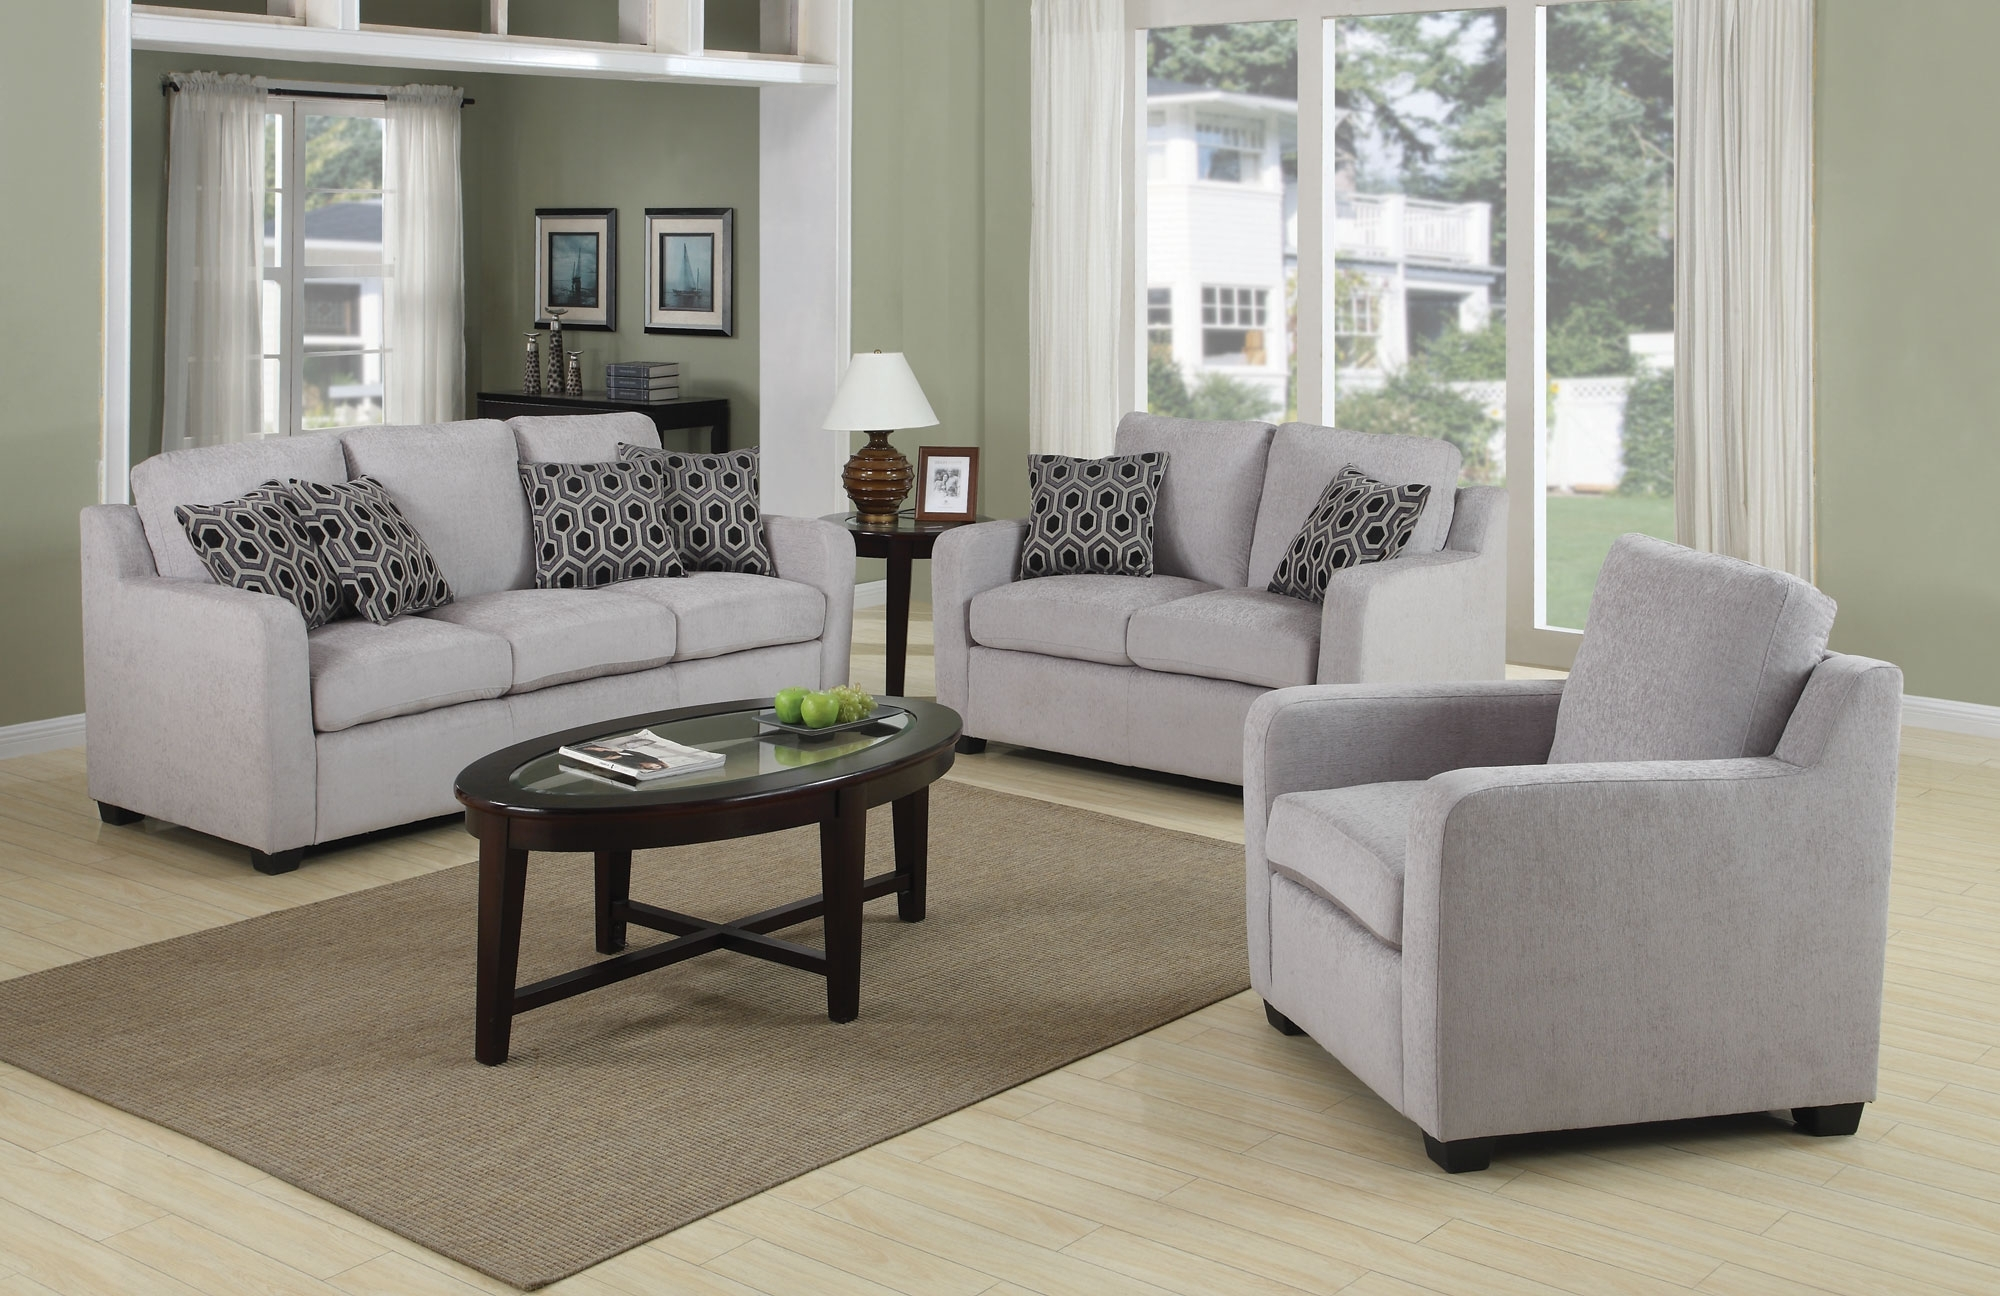 Small Sofas And Chairs Intended For 2017 Furniture: Amazing Set Of Chairs For Living Room 3 Piece Living (View 6 of 15)